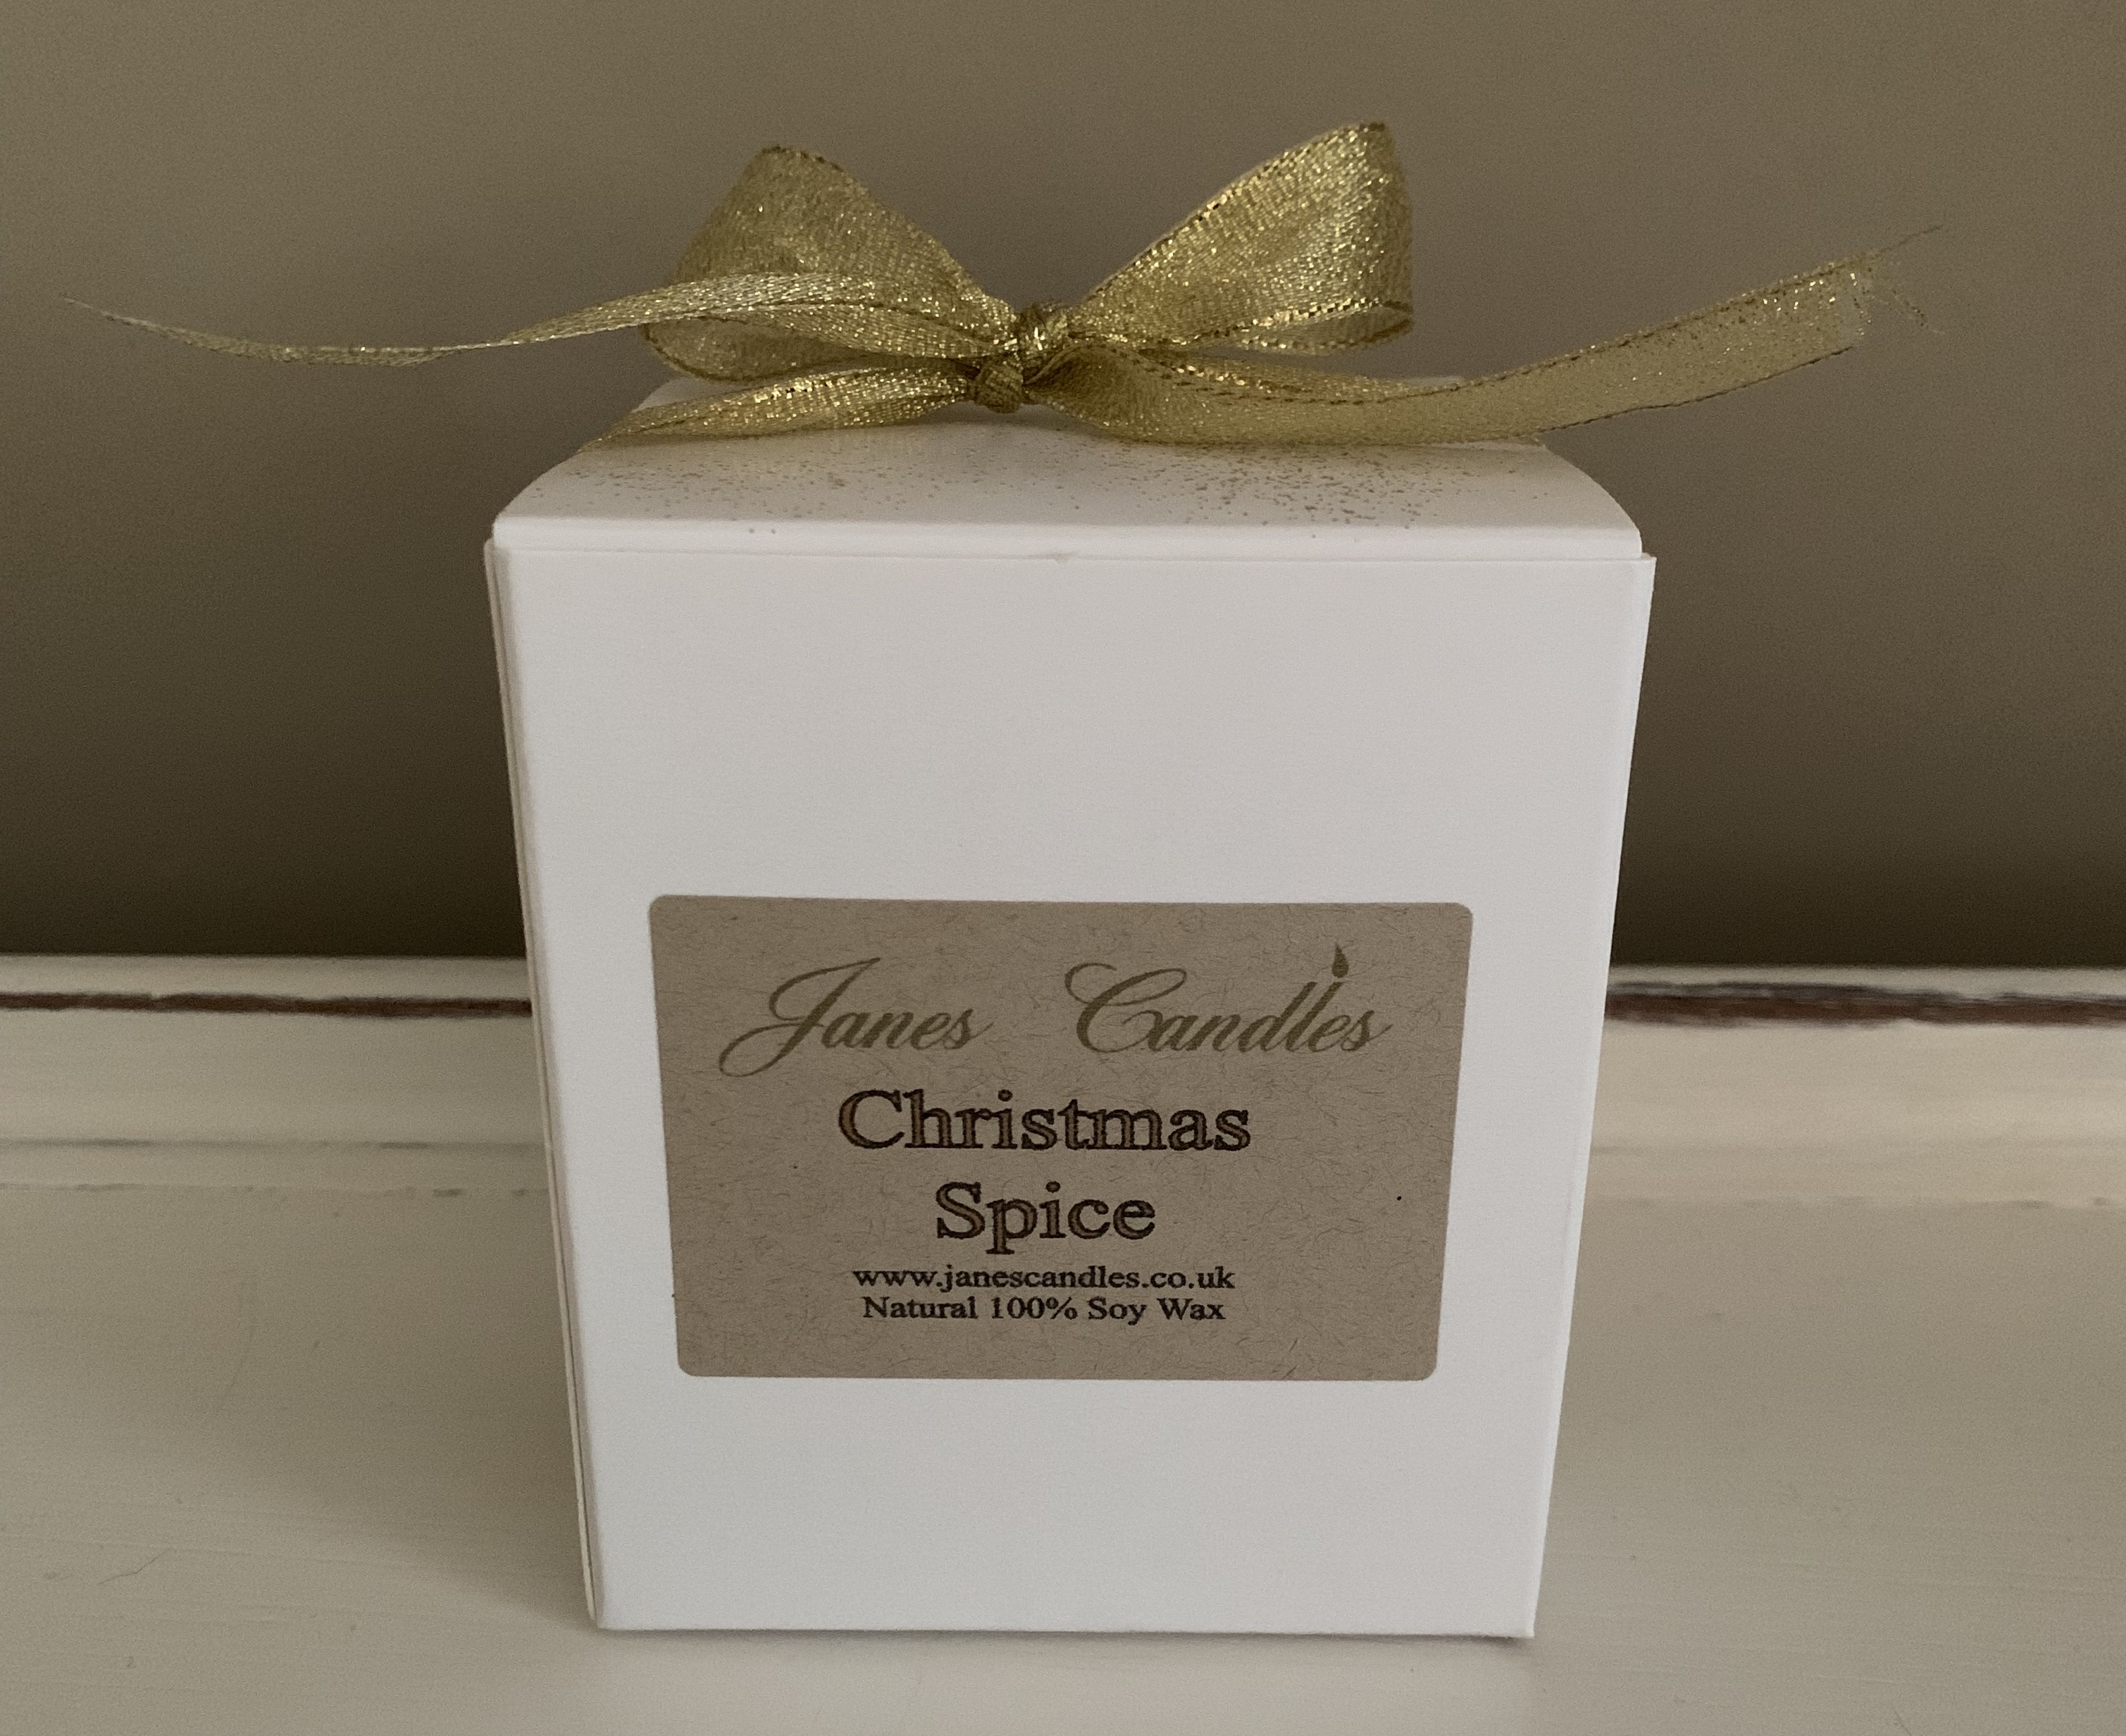 Christmas Spice Candle Packaging